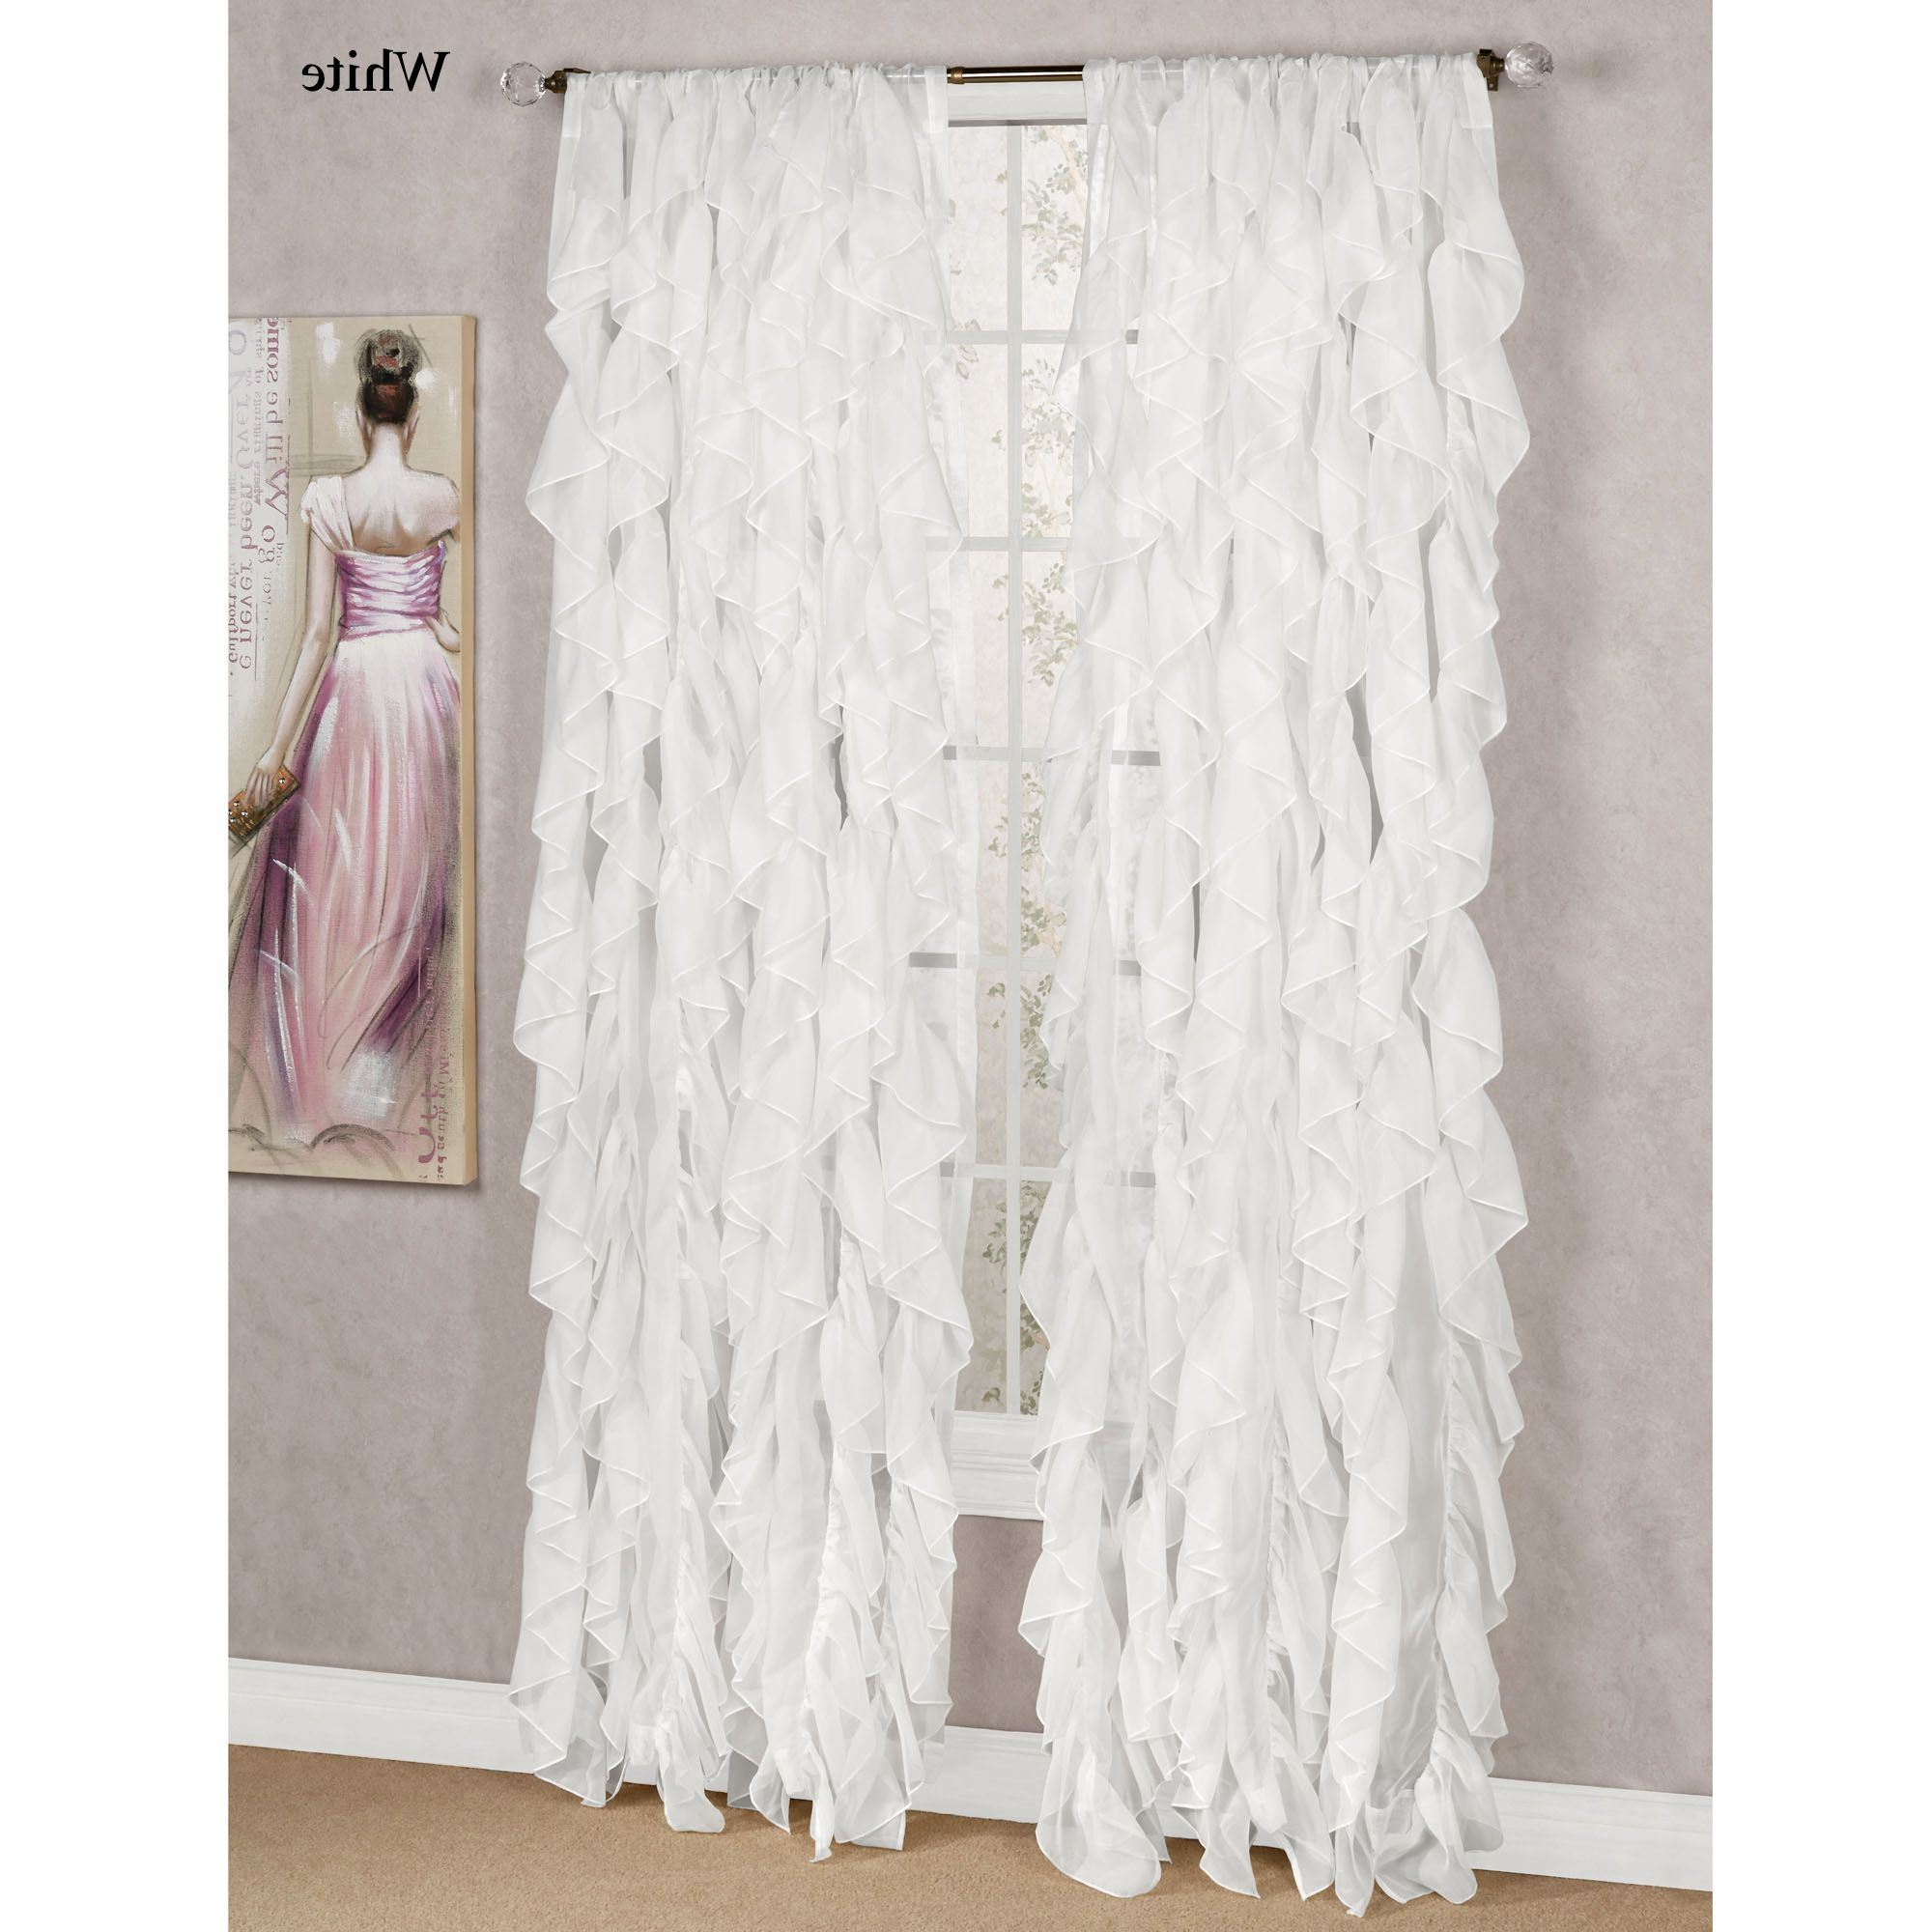 Well Liked Cascade Sheer Voile Ruffled Window Treatment Throughout Chic Sheer Voile Vertical Ruffled Window Curtain Tiers (View 12 of 20)